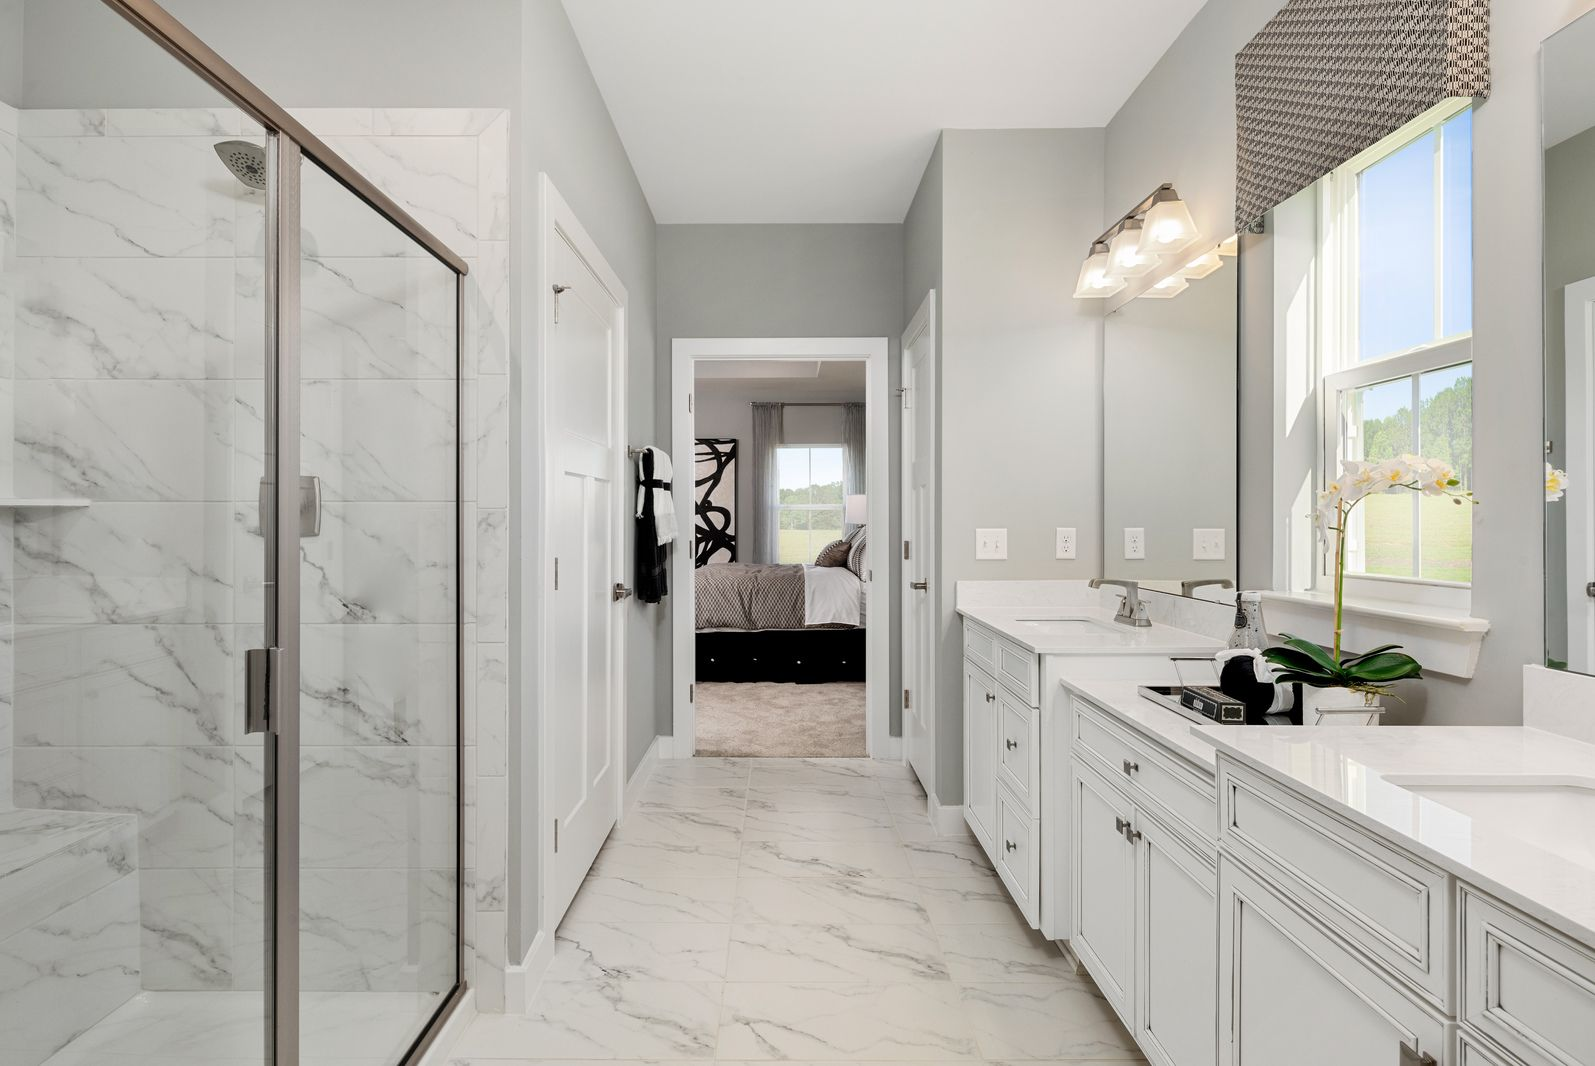 Bathroom featured in the Savannah By Ryan Homes in Sussex, DE